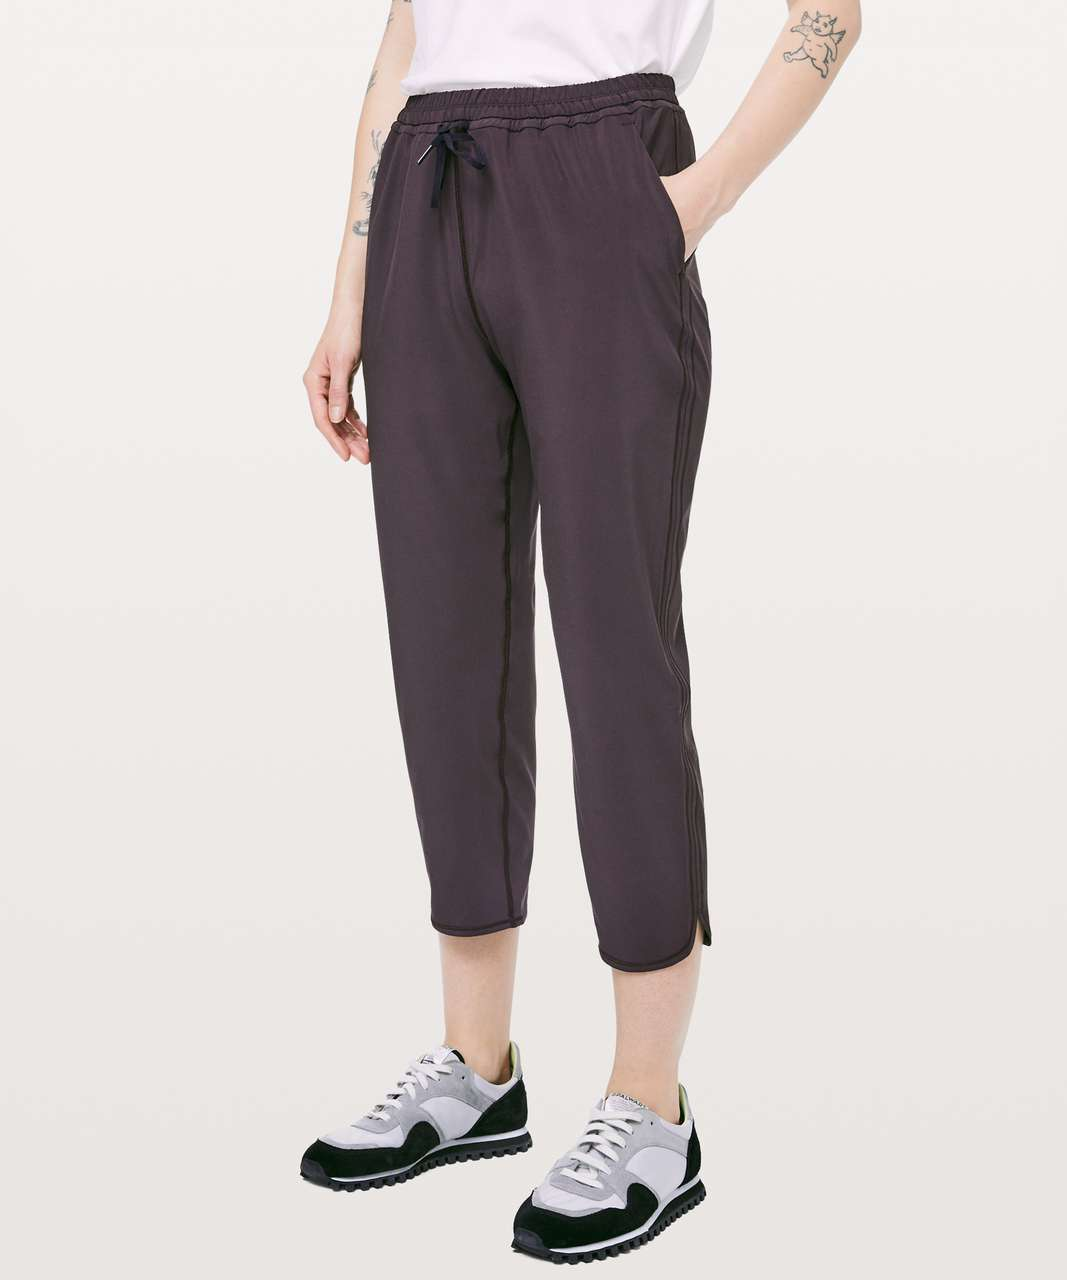 "Lululemon Keep It Classic Crop 23"" - Plum Shadow"